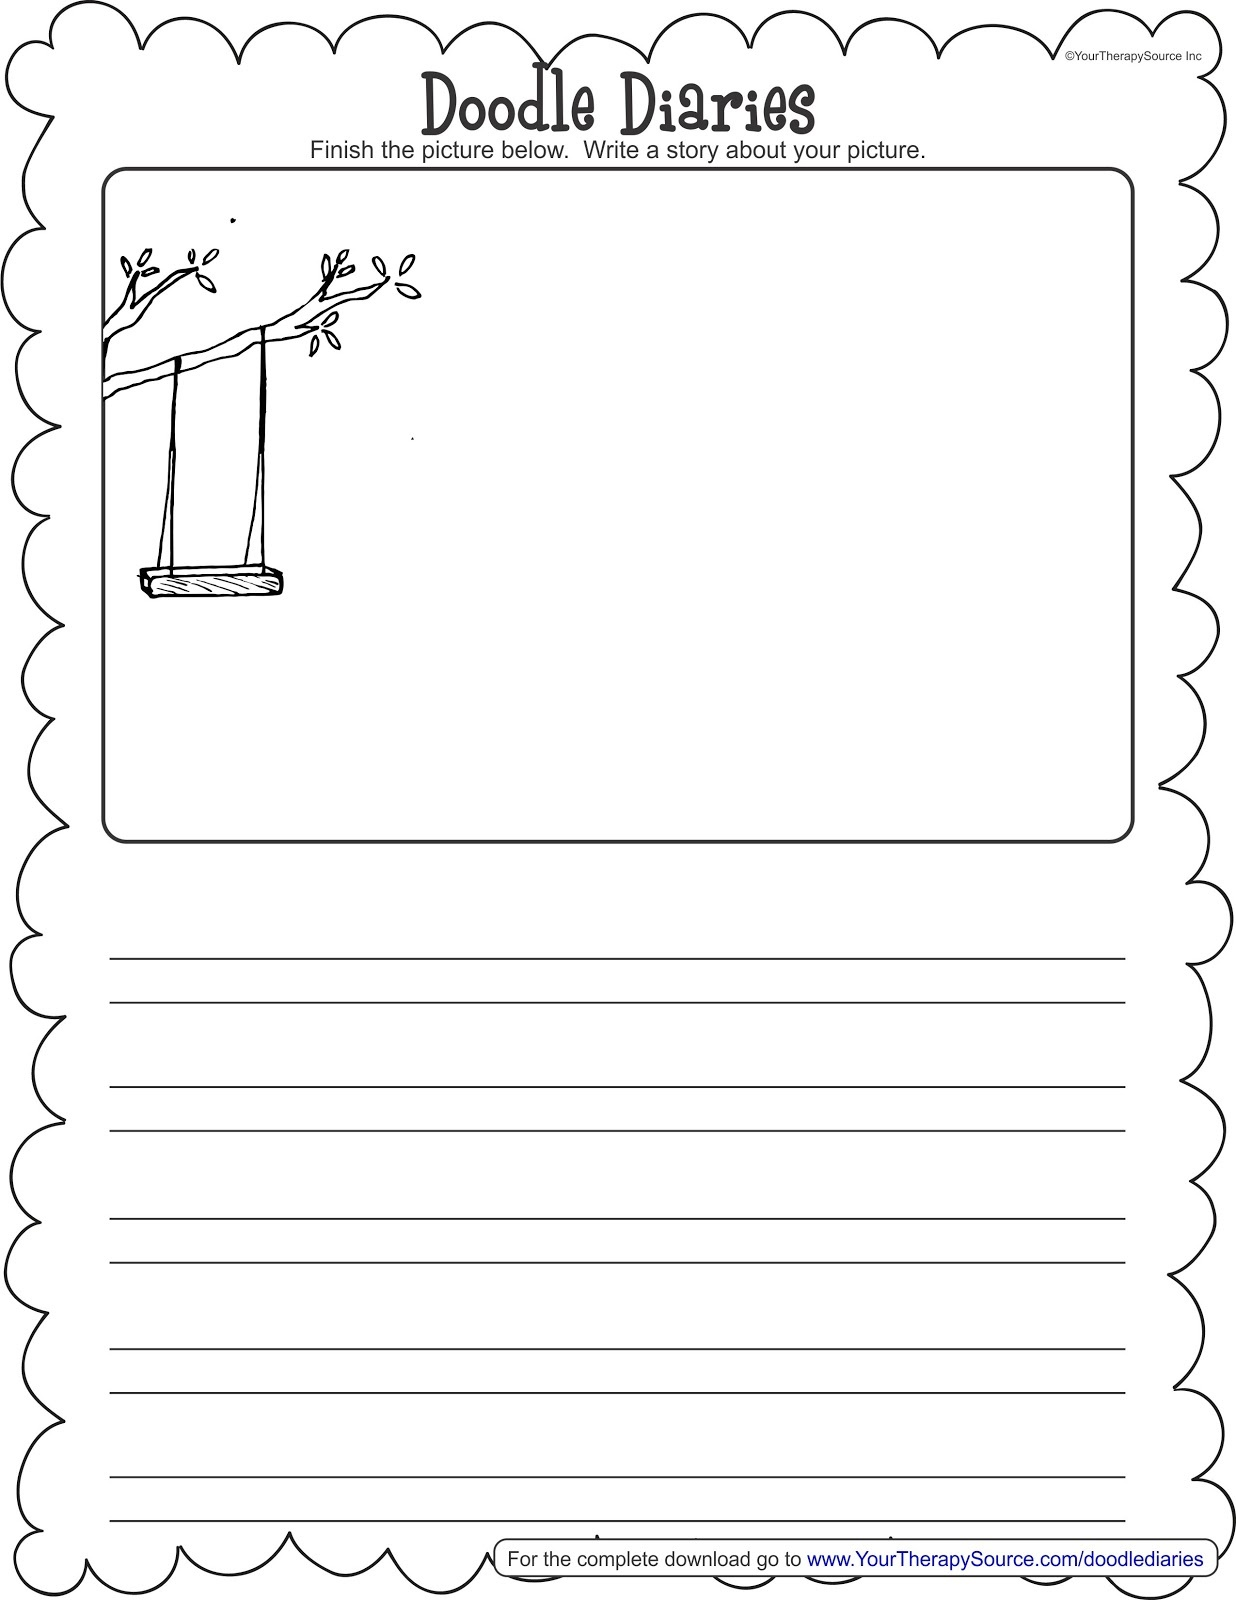 Doodle Diaries - Your Therapy Source - Free Squiggle Story Printable